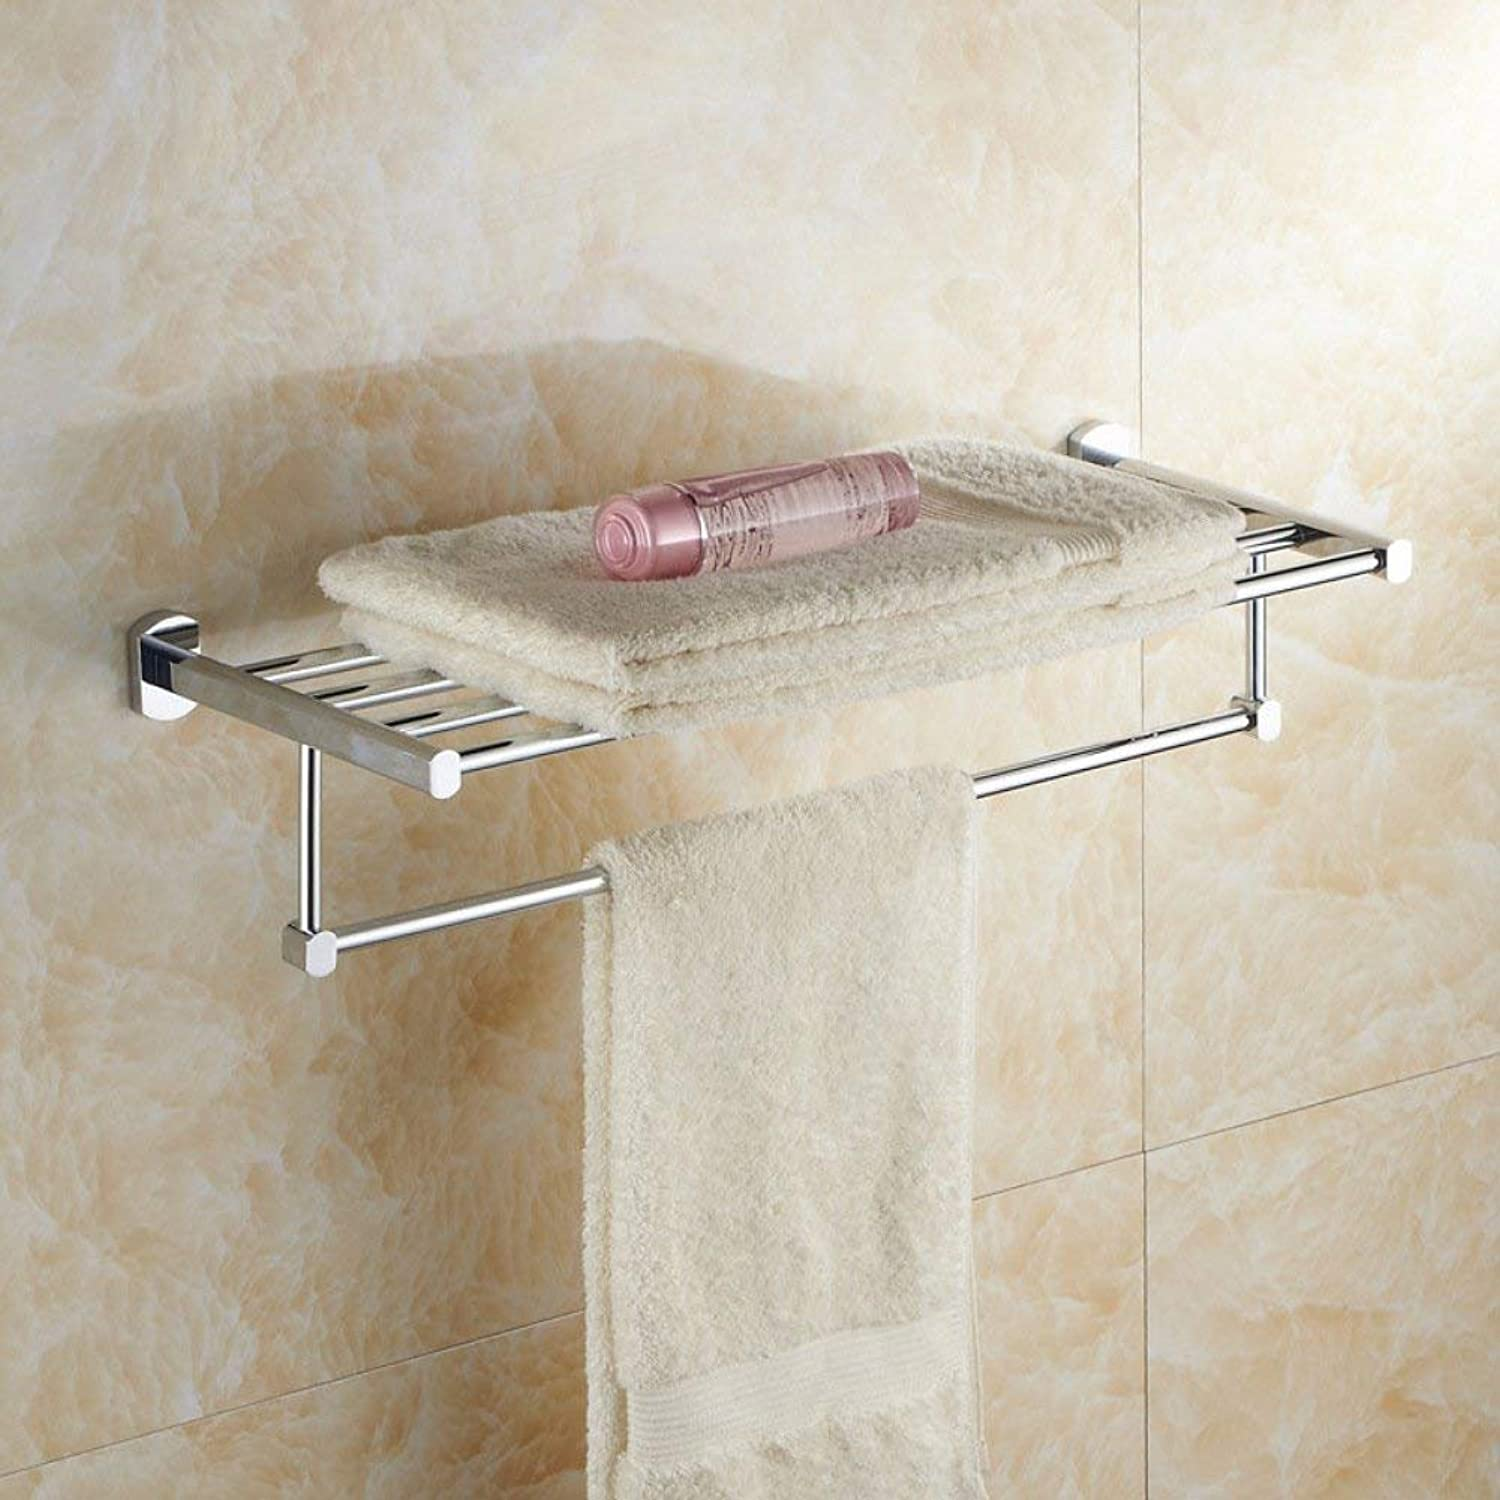 Modern Minimalist Style Home Bathroom Hair-Towels, a Process of Electroplating, Easy to Clean, The Inssizetion of Drilling, top of The Range Hotel with Bathroom,Shelves,Length 60cm Money